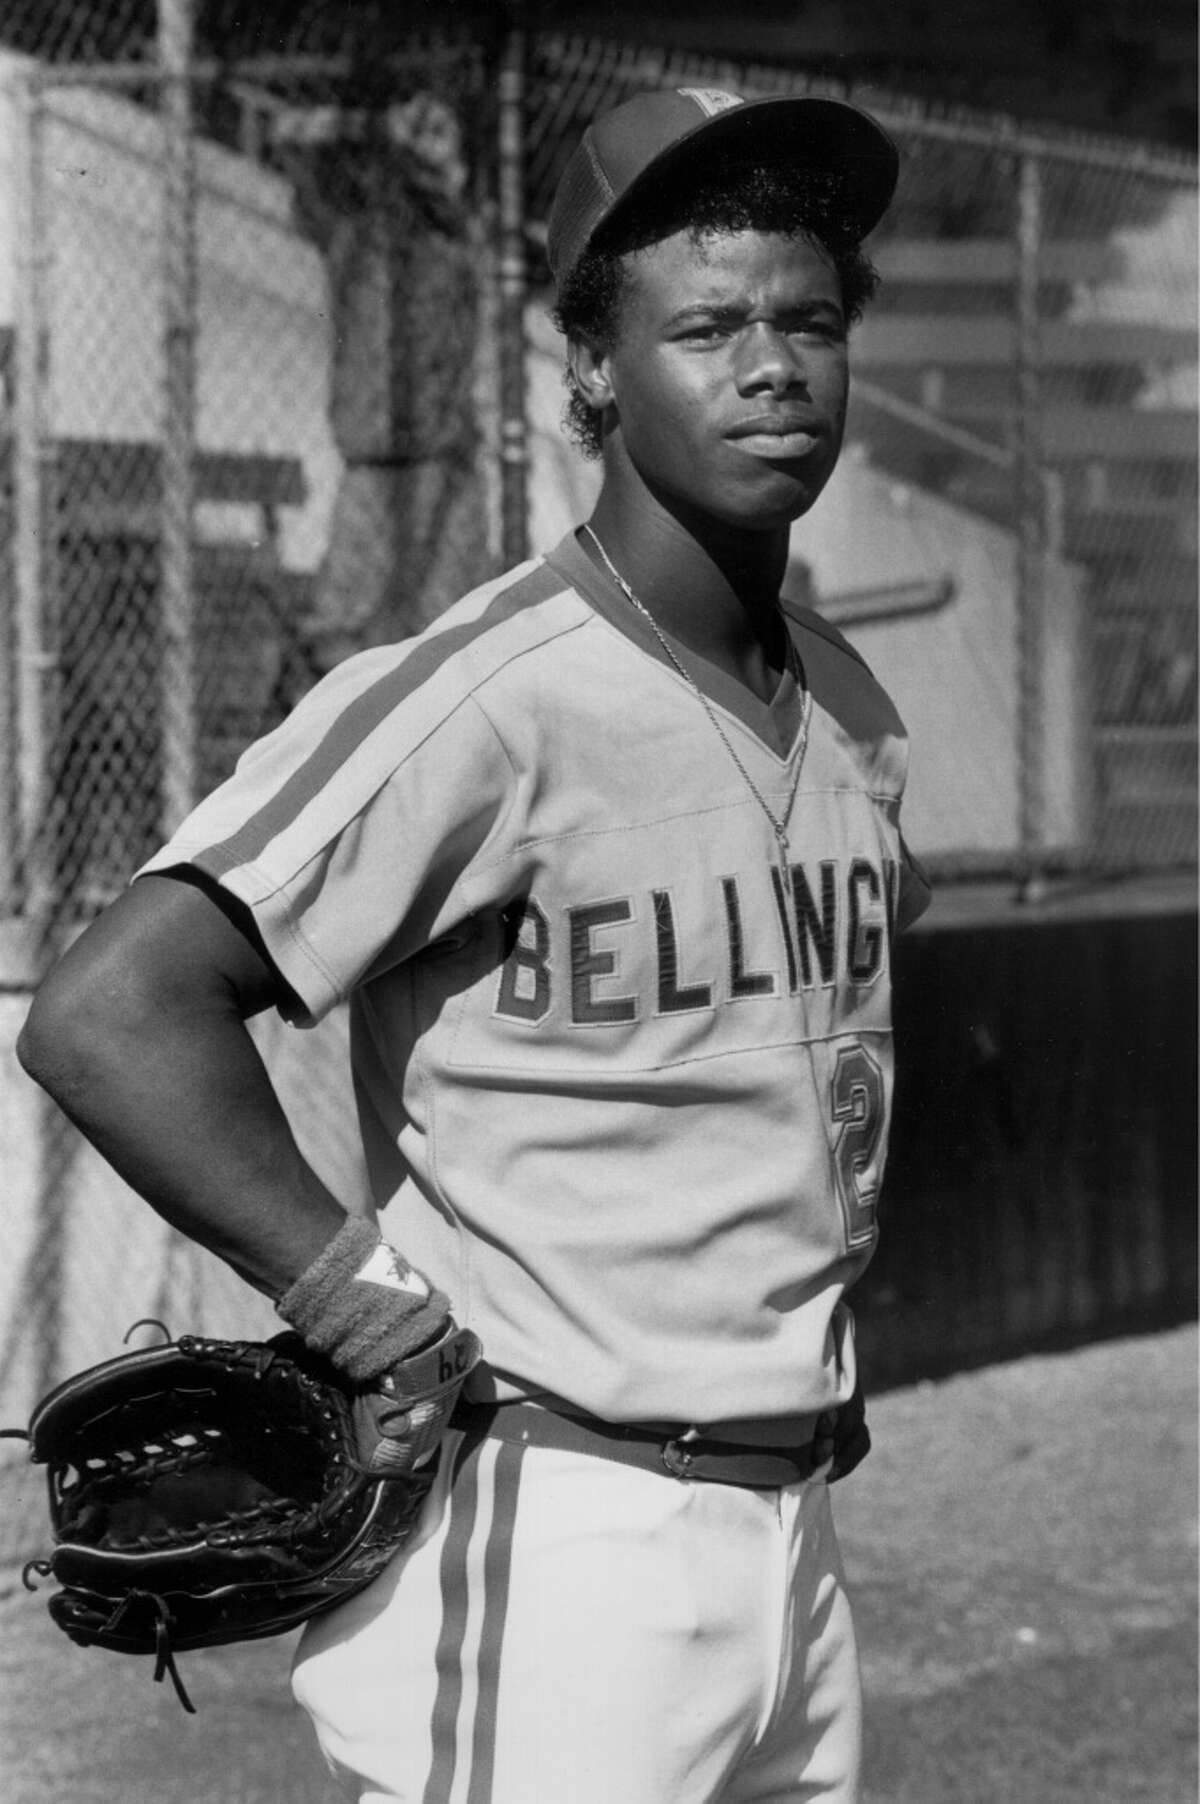 The Mariners selected Griffey first-overall in the 1987 MLB Draft. Here he is that year playing for the Single-A Bellingham Mariners.